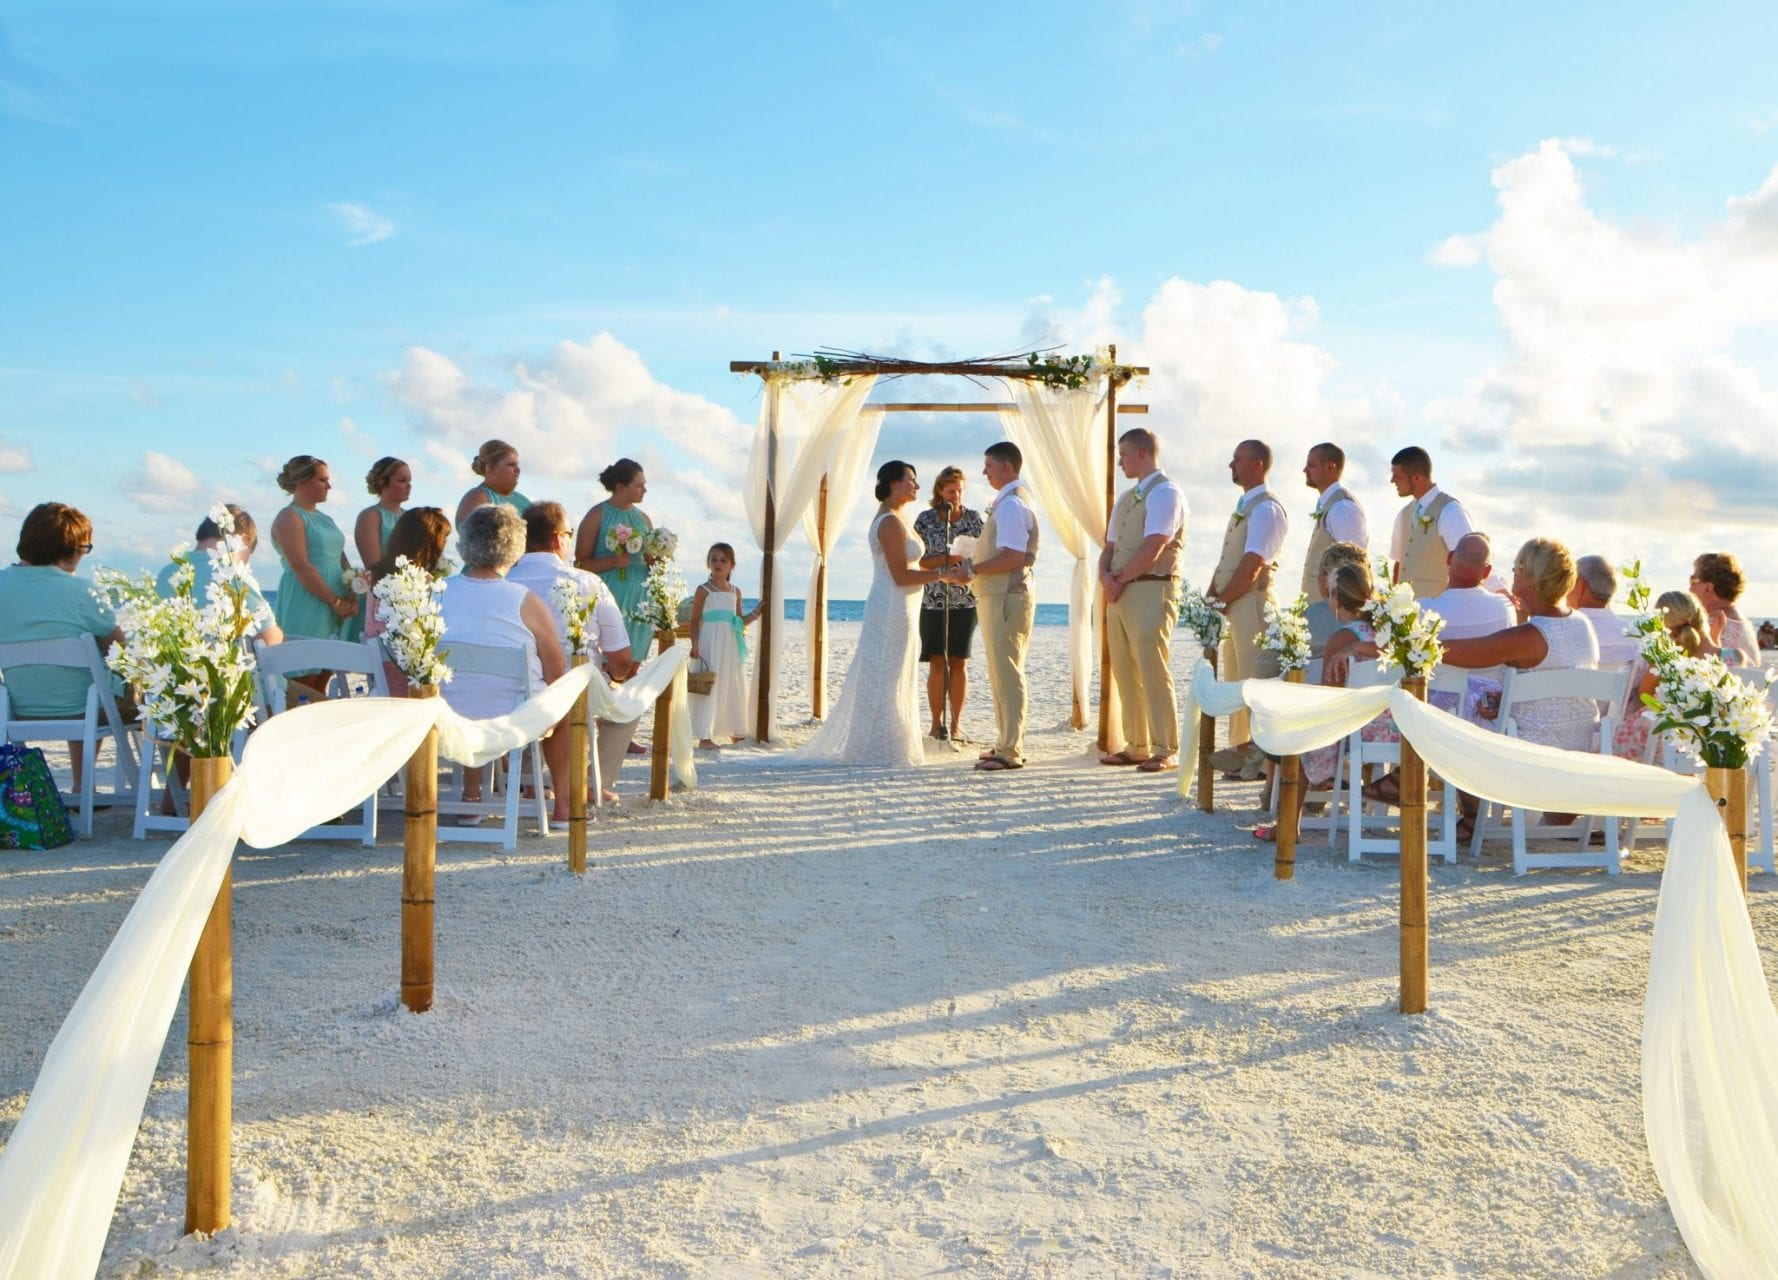 Draped floral wedding arch with couple saying vows on the beach